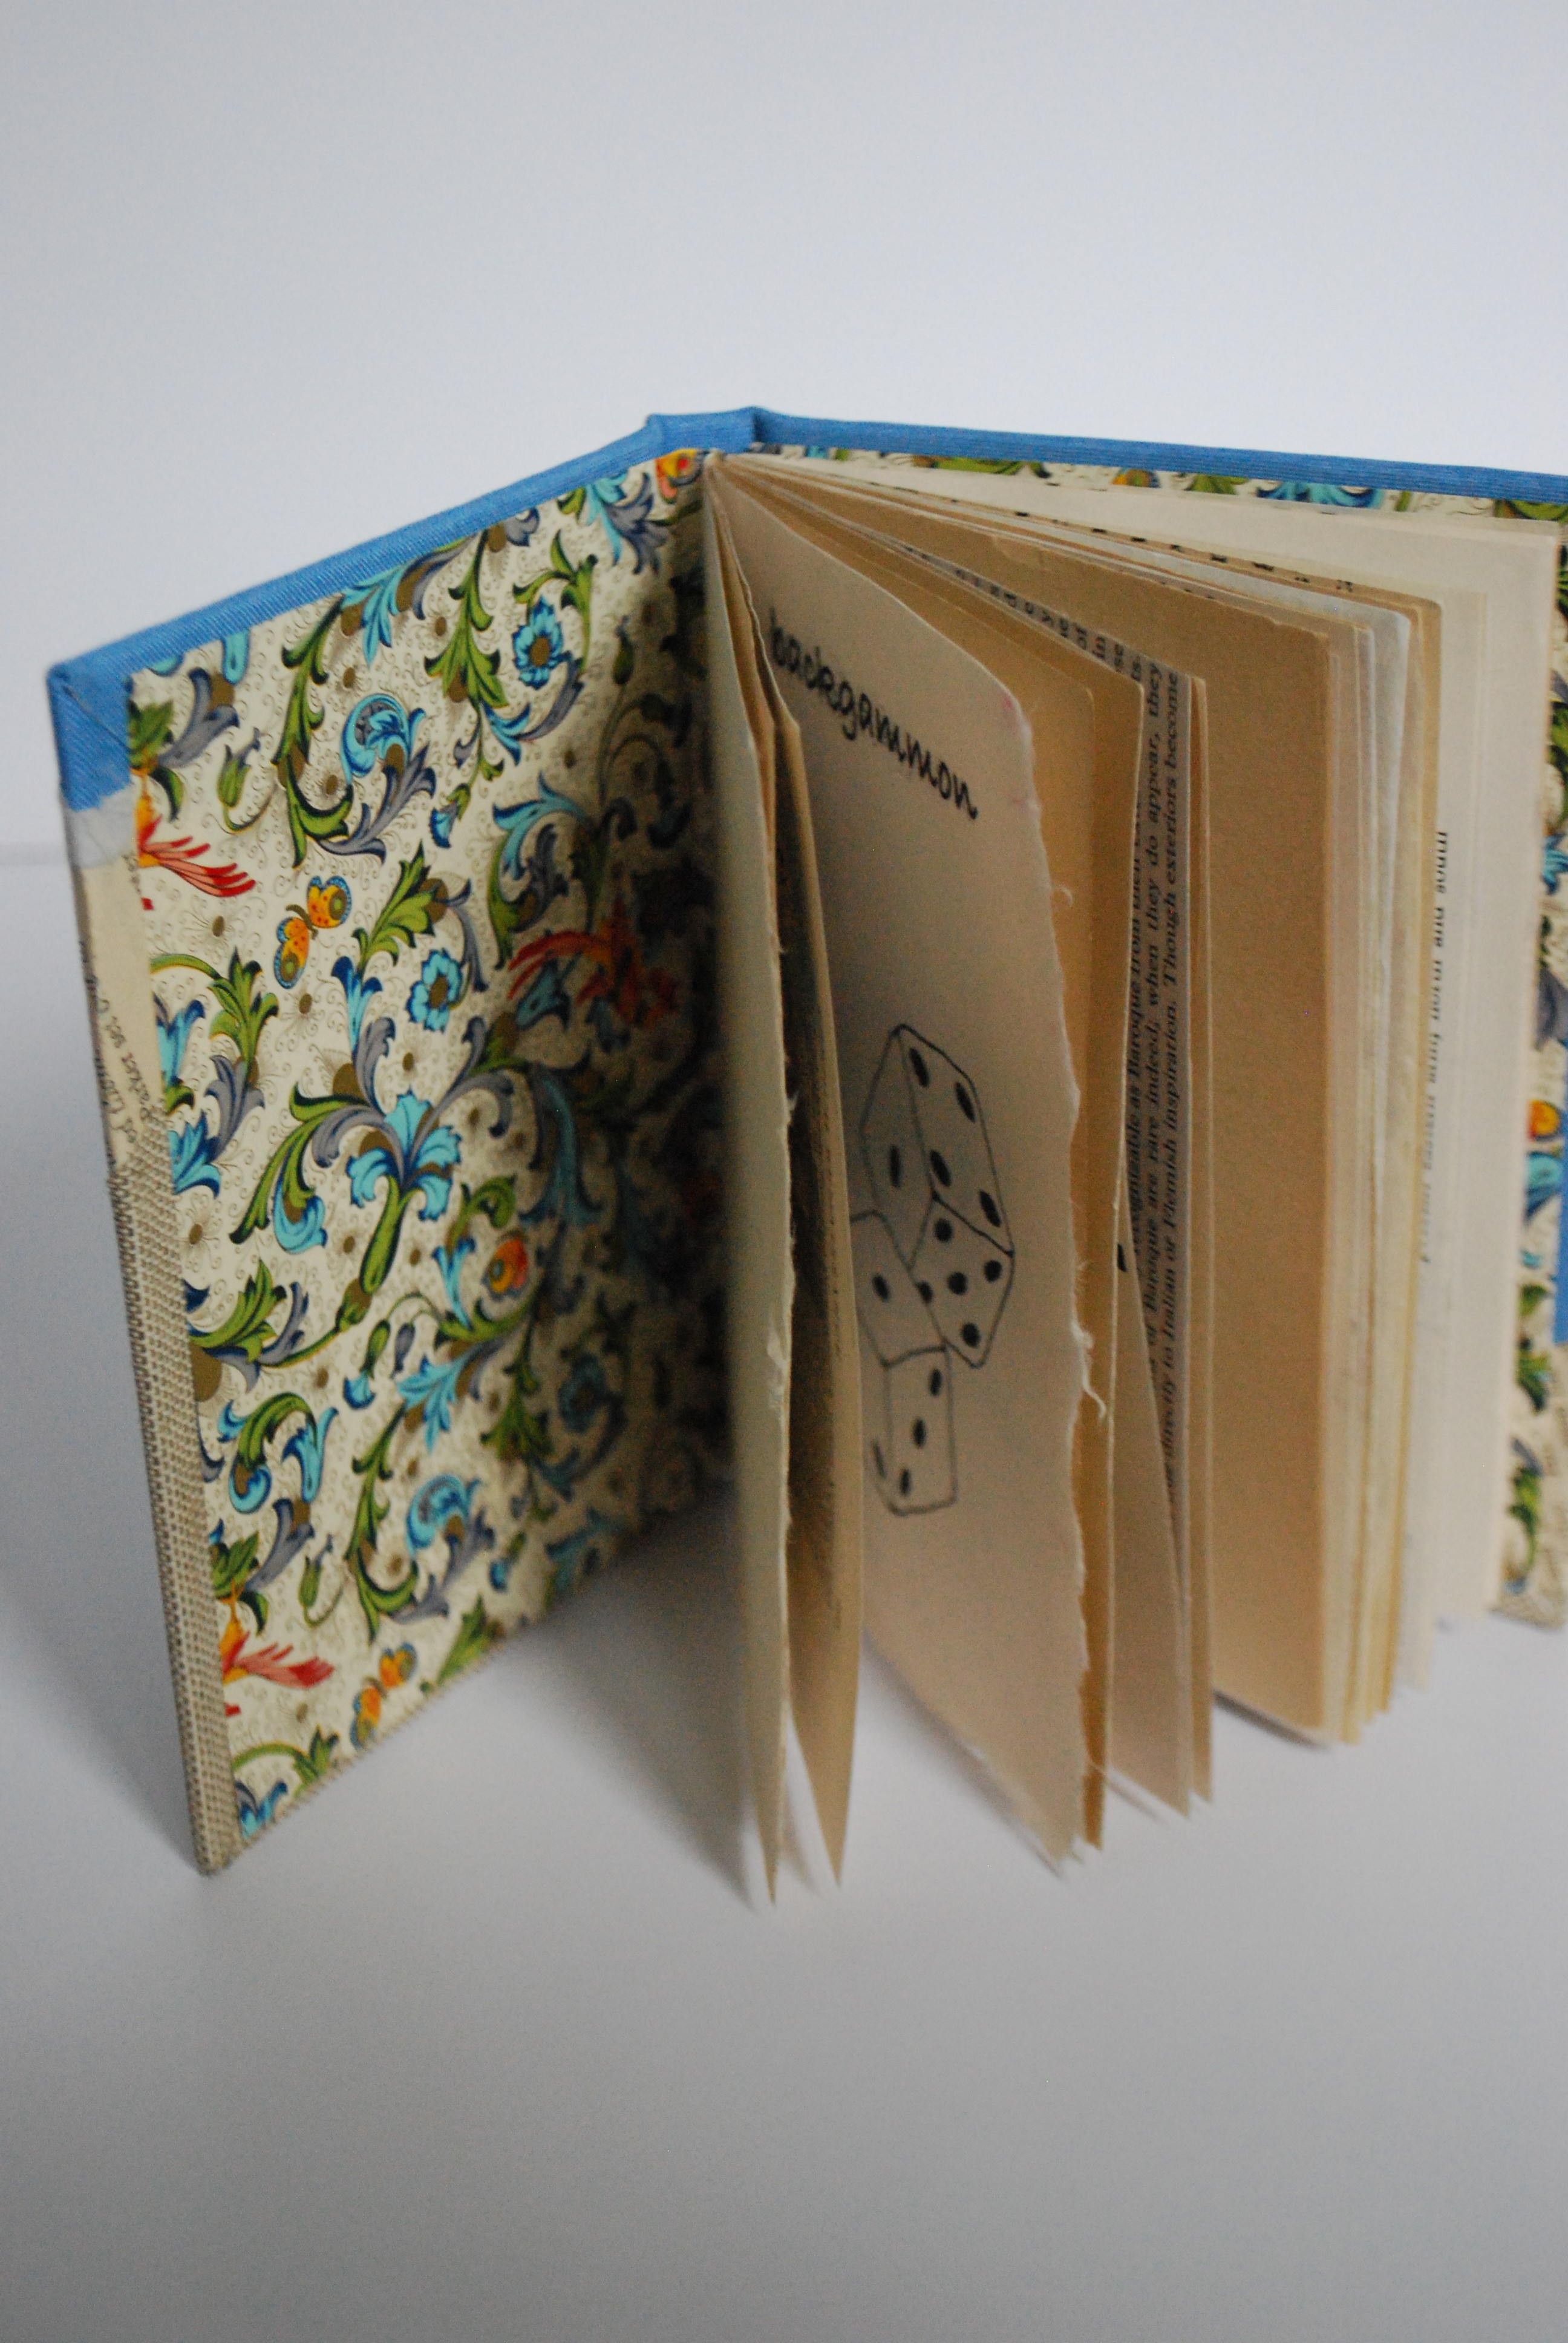 Book propped open showing decorative end papers and mixed paper pages